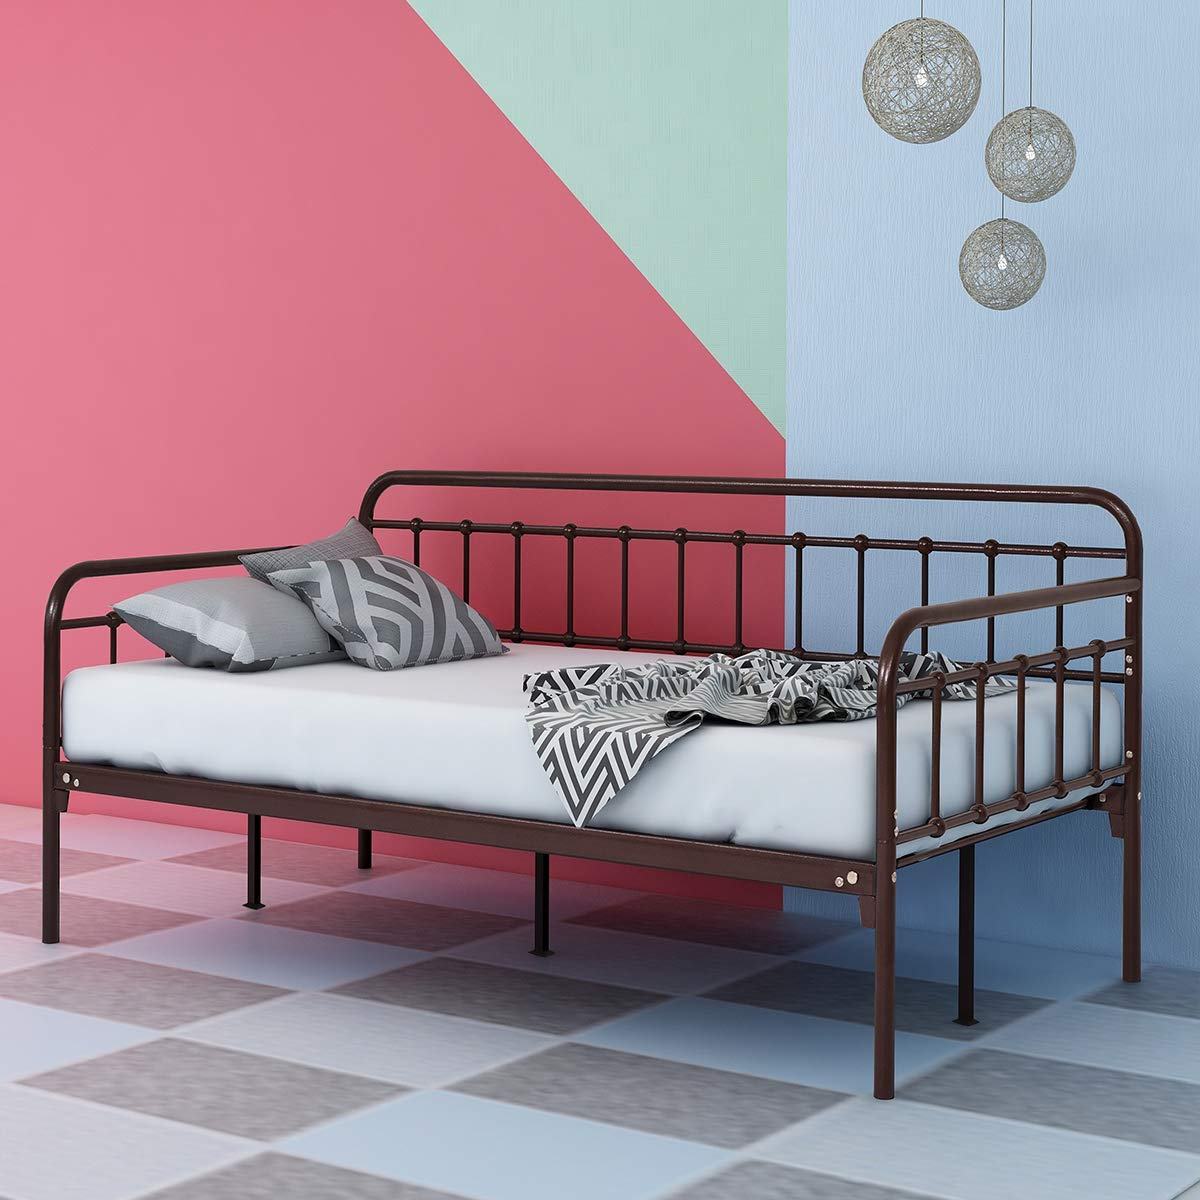 Dumee Metal Daybed Frame Firm Modern Guest Room Sofa Multifunction Muebles De Dormitorio Stability Bed Home Furniture Bedroom Aliexpress